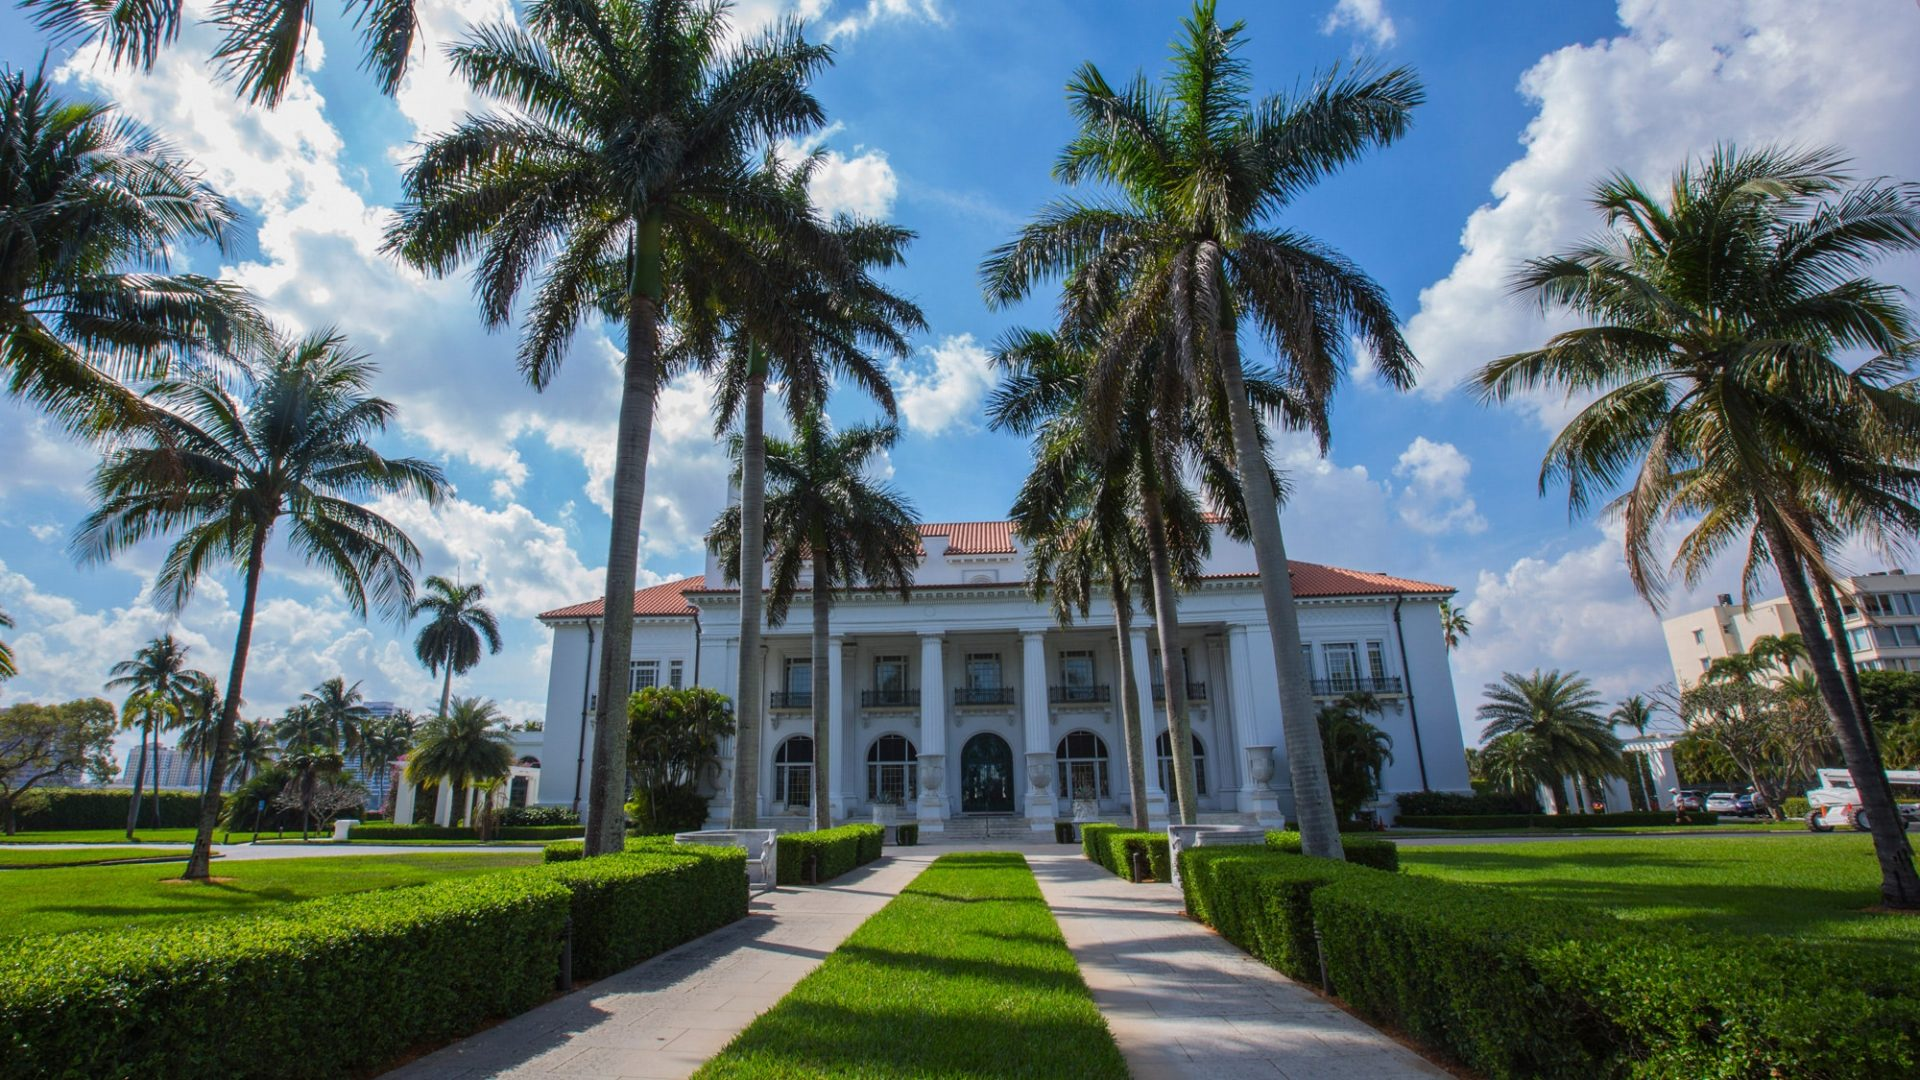 Hendry Morrison Flagler Museum, West Palm Beach, U.S.A.